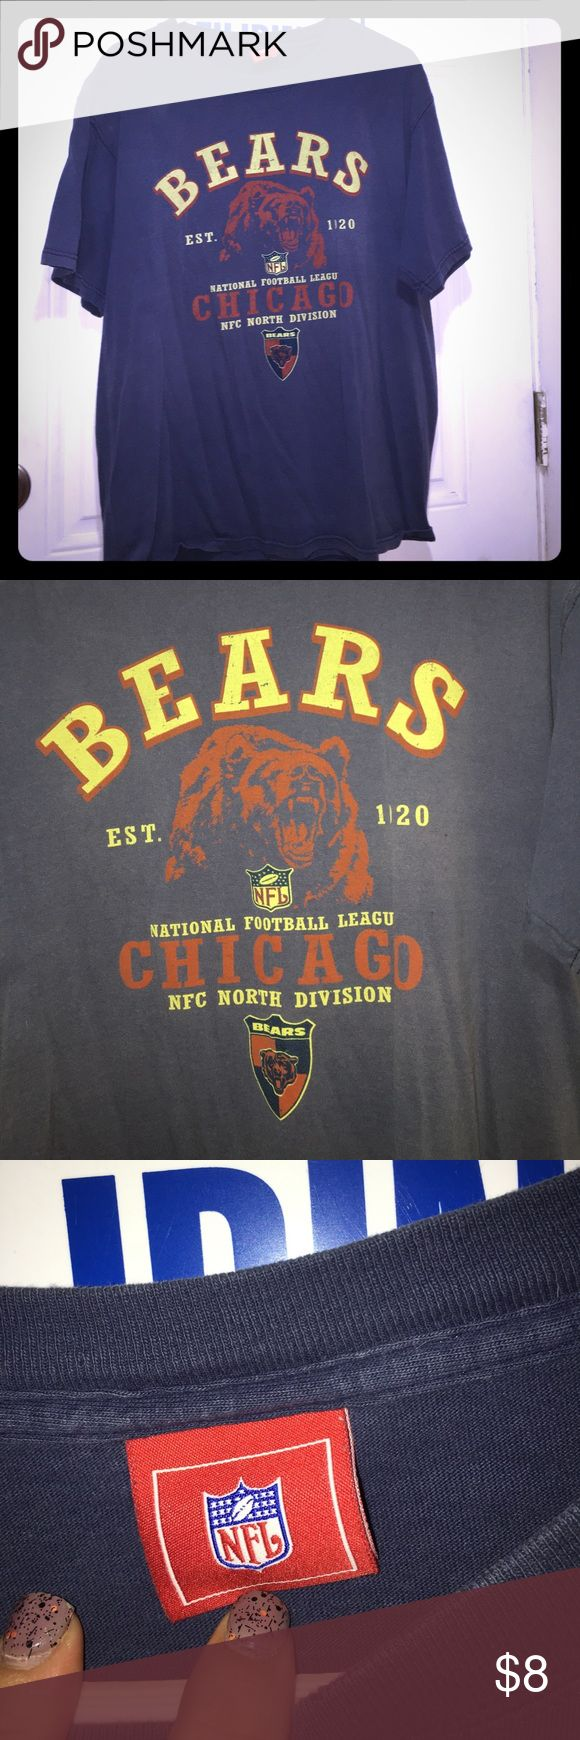 Chicago Bears T-shirt Vintage design. Good condition. No stains rips or holes NFL Shirts Tees - Short Sleeve